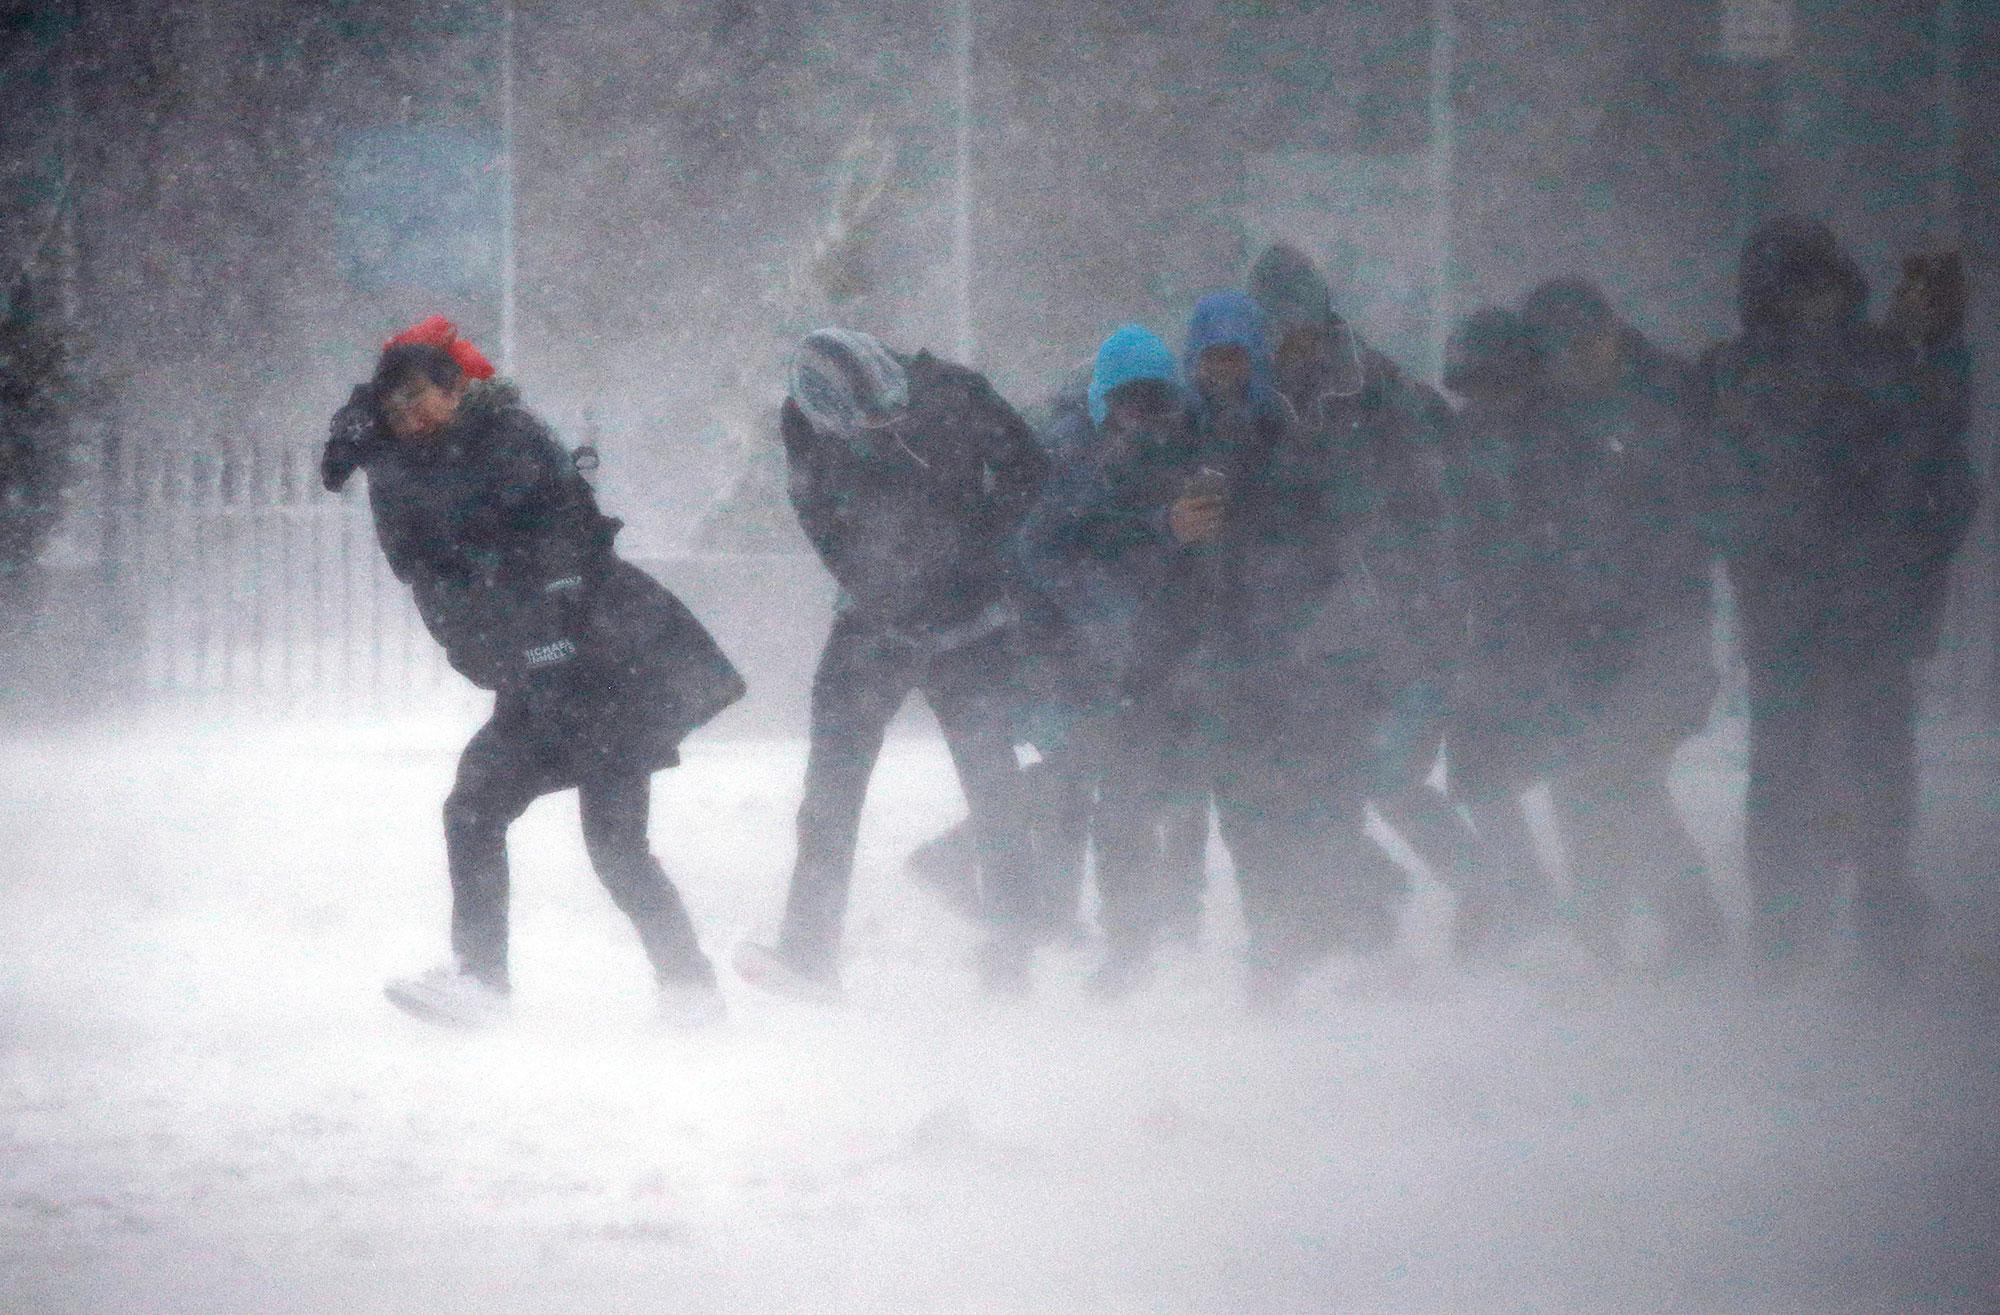 <p>People struggle to walk in the blowing snow during a winter storm Tuesday, March 14, 2017, in Boston. (AP Photo/Michael Dwyer) </p>